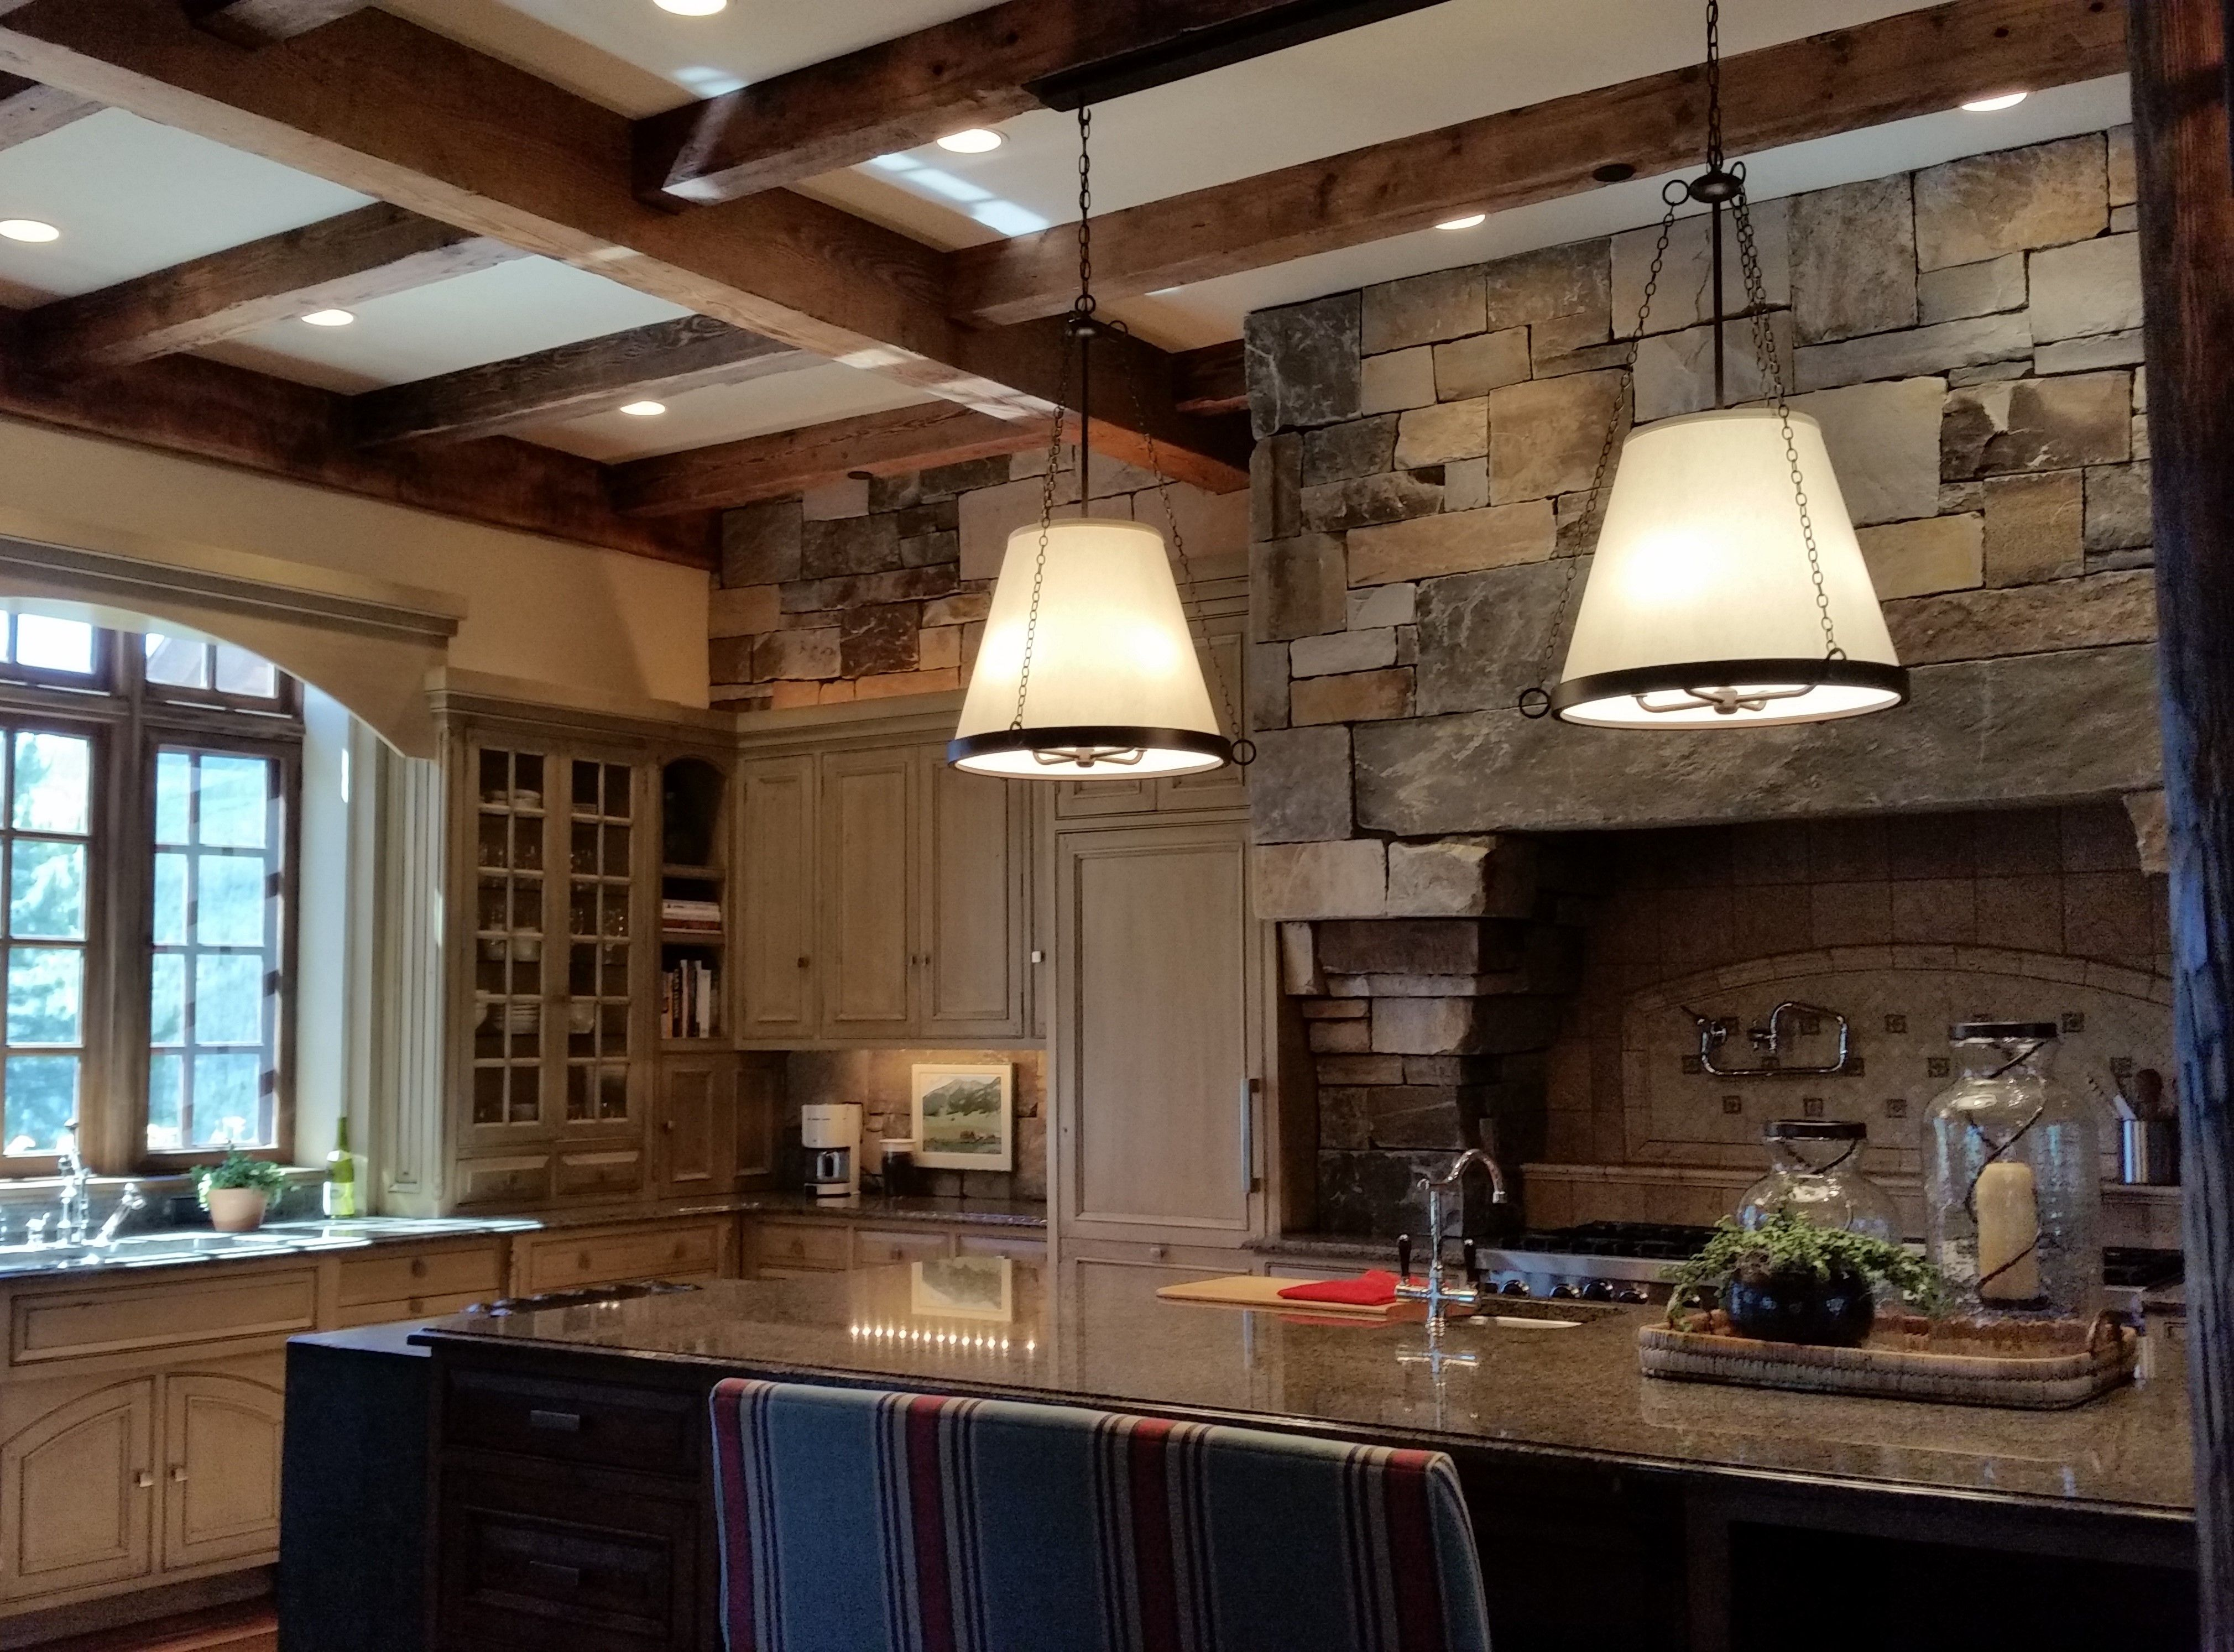 E Up Your Kitchen With Our Custom Light Fixtures This Is Designed By Jodi Shirkey Tate Interiors Yellowstone Club Mt